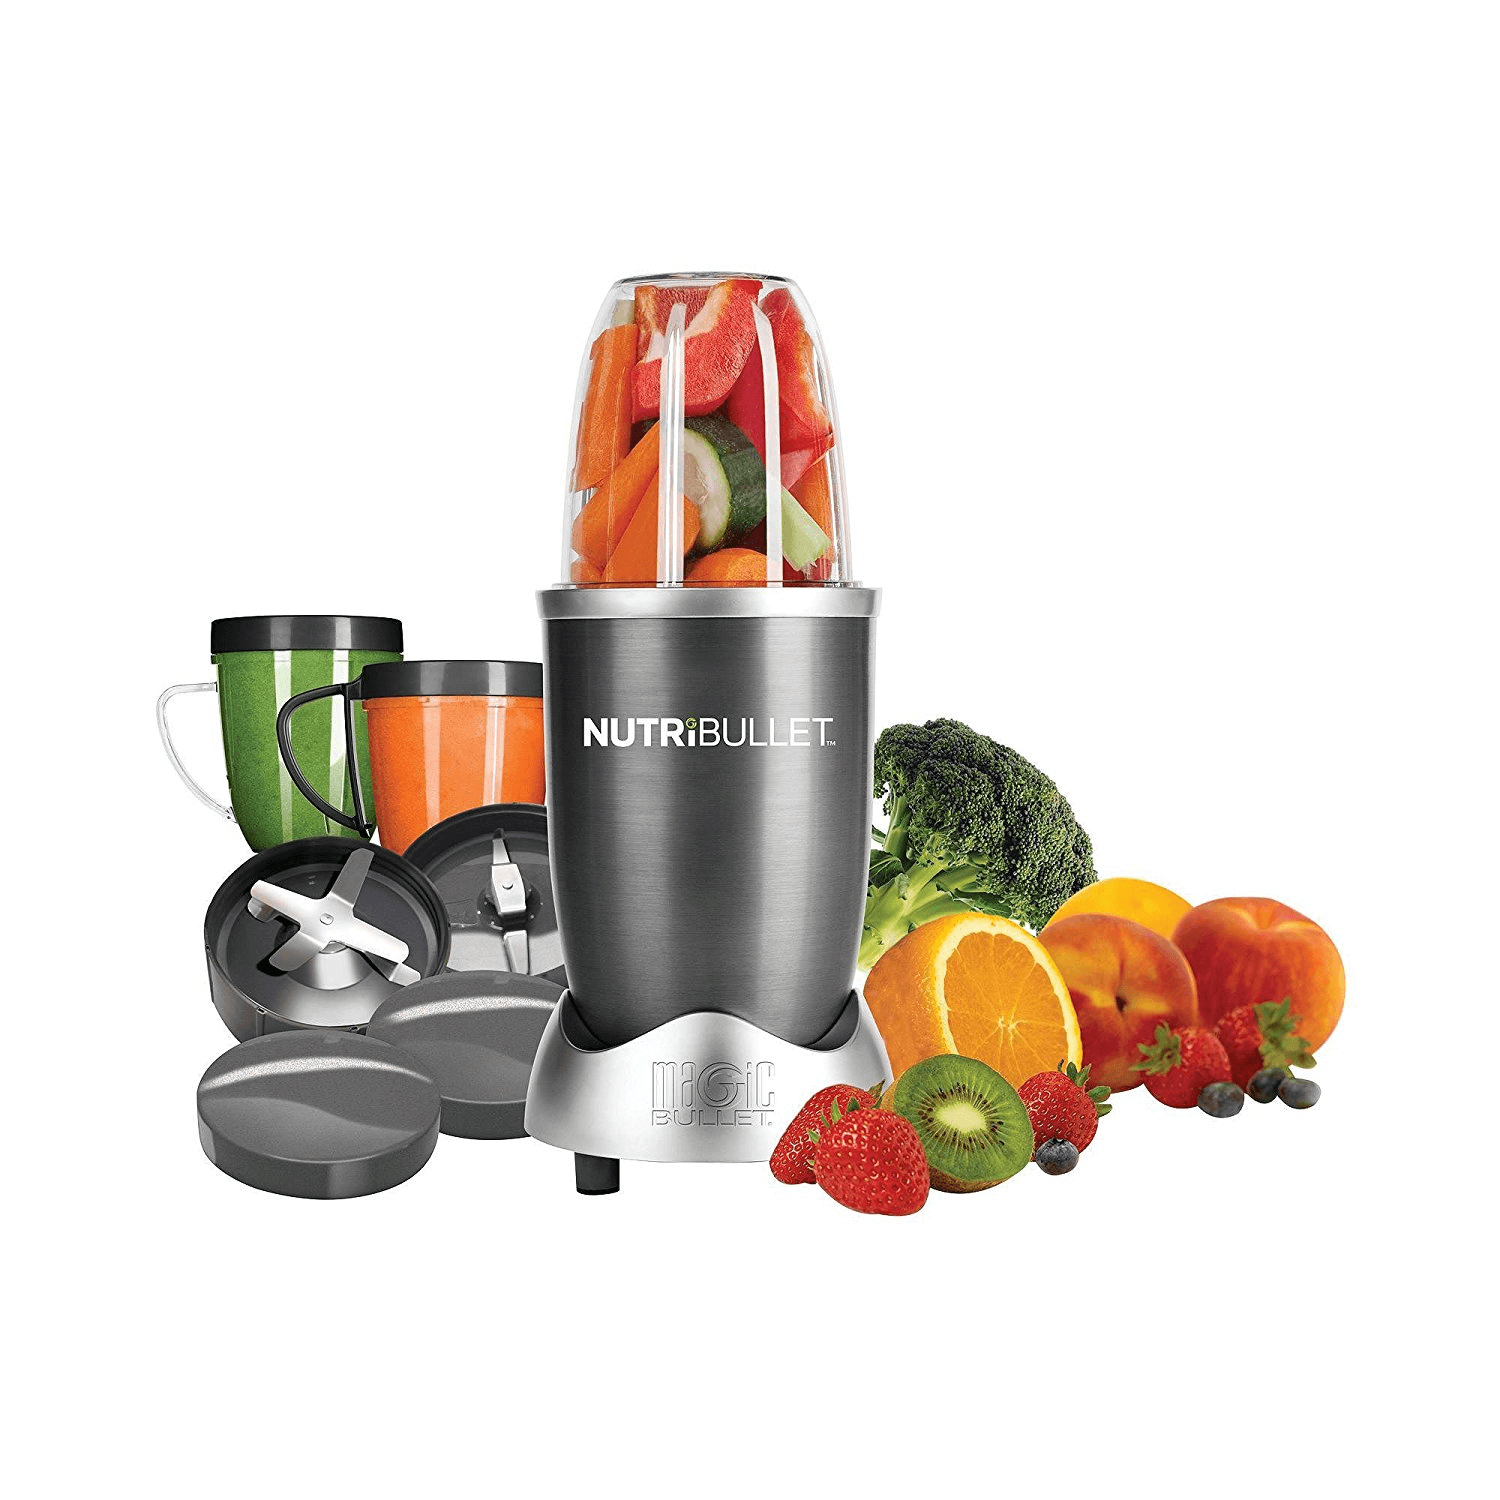 NutriBullet 12-Piece Mixer